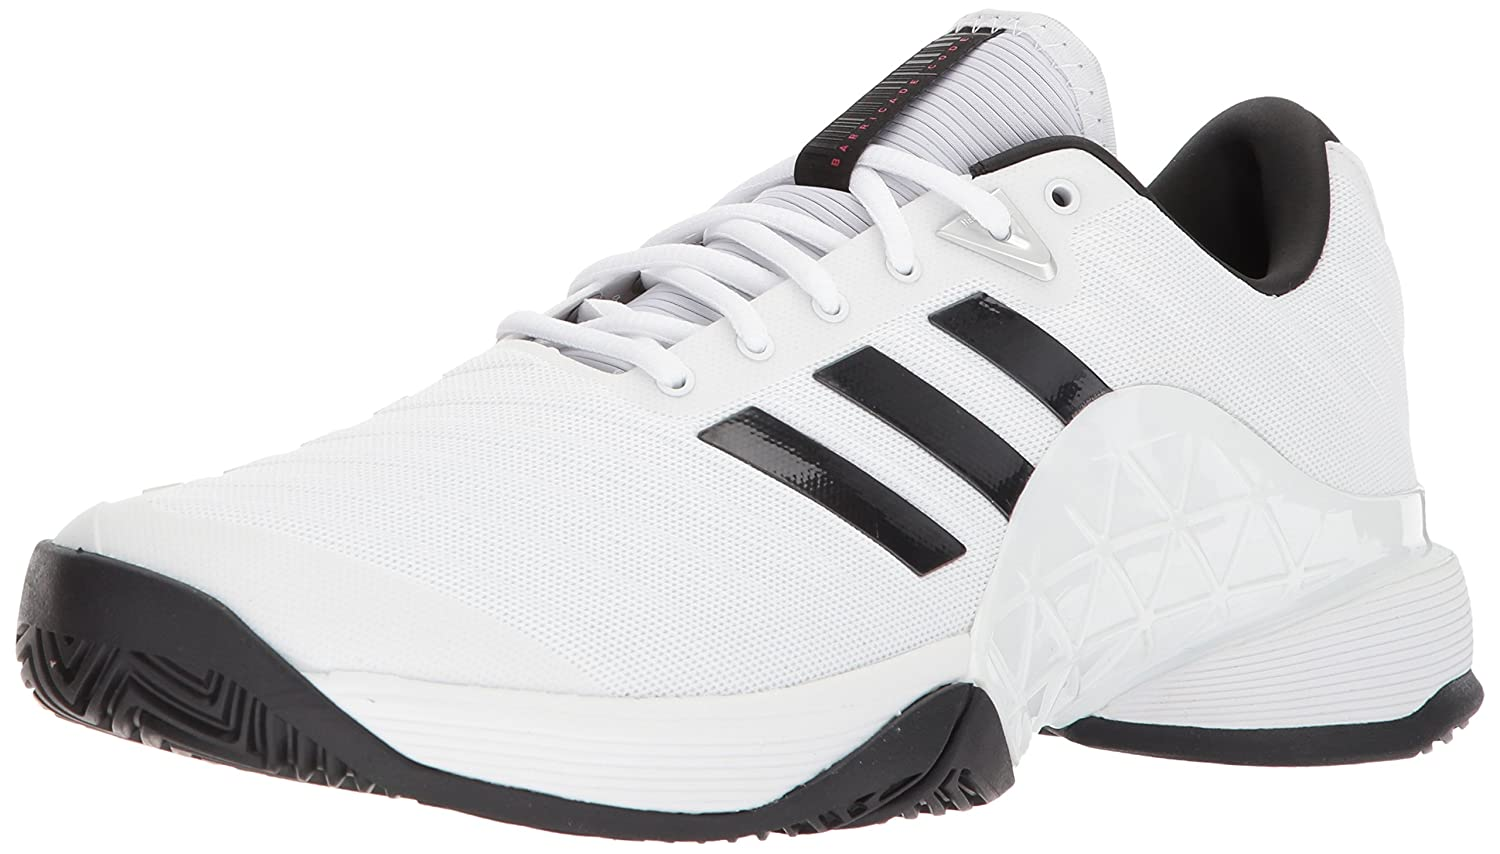 separation shoes 47499 5a076 Amazon.com  adidas Mens Barricade 2018 Tennis Shoe  Tennis  Racquet  Sports